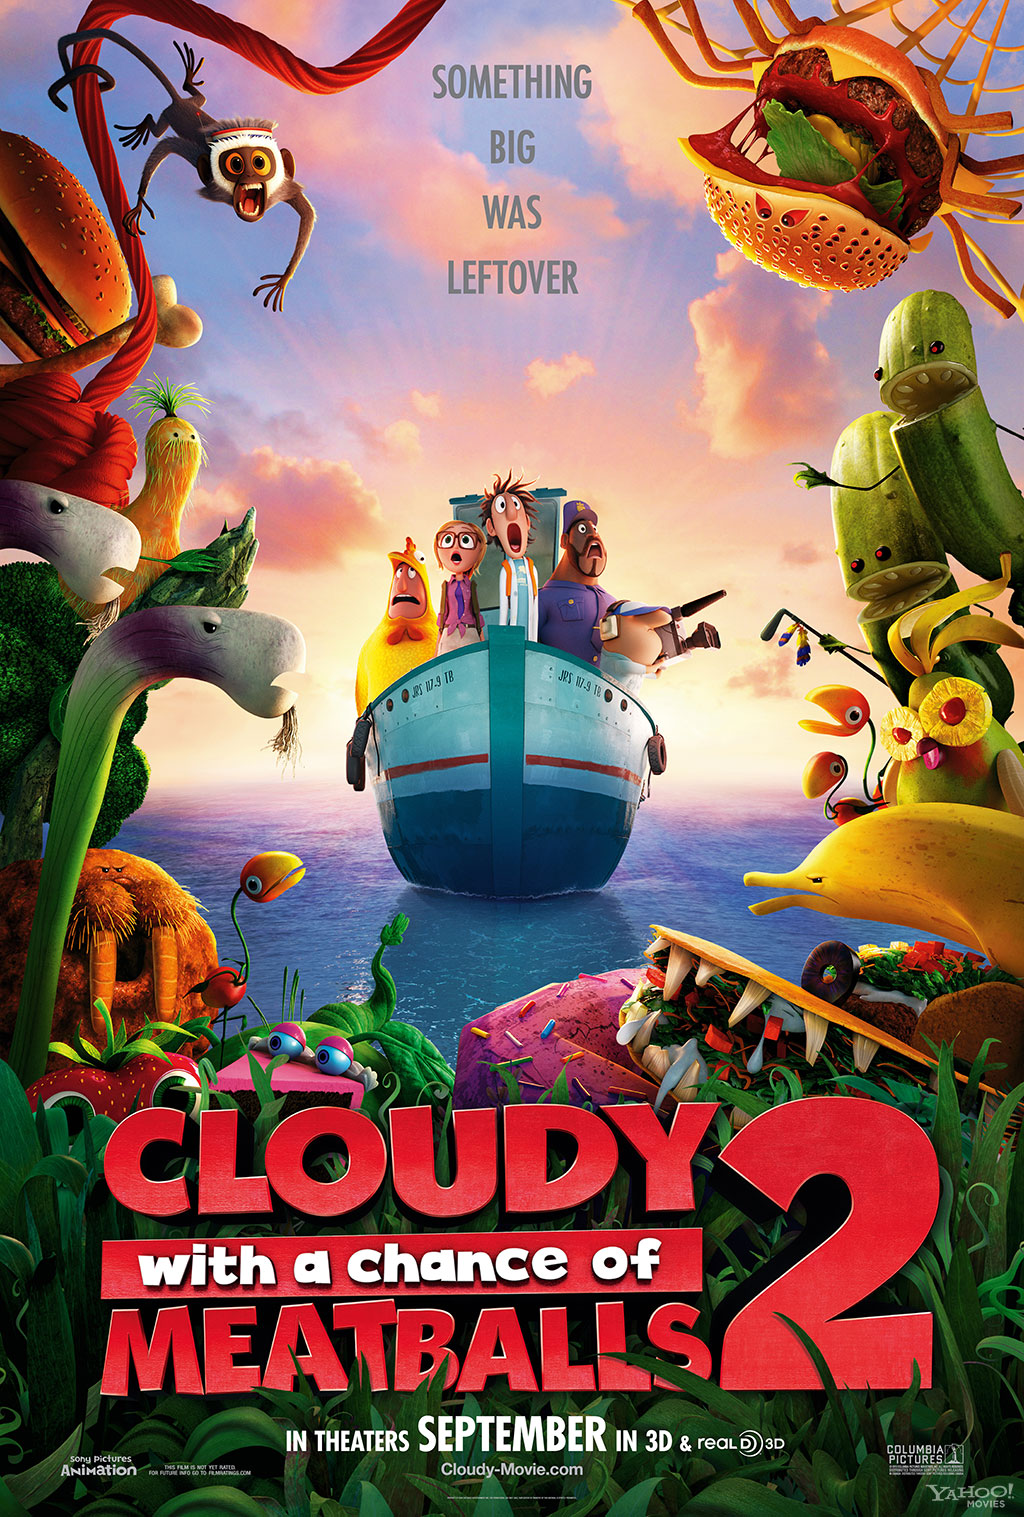 http://collider.com/wp-content/uploads/cloudy-with-a-chance-of-meatballs-2-poster.jpg